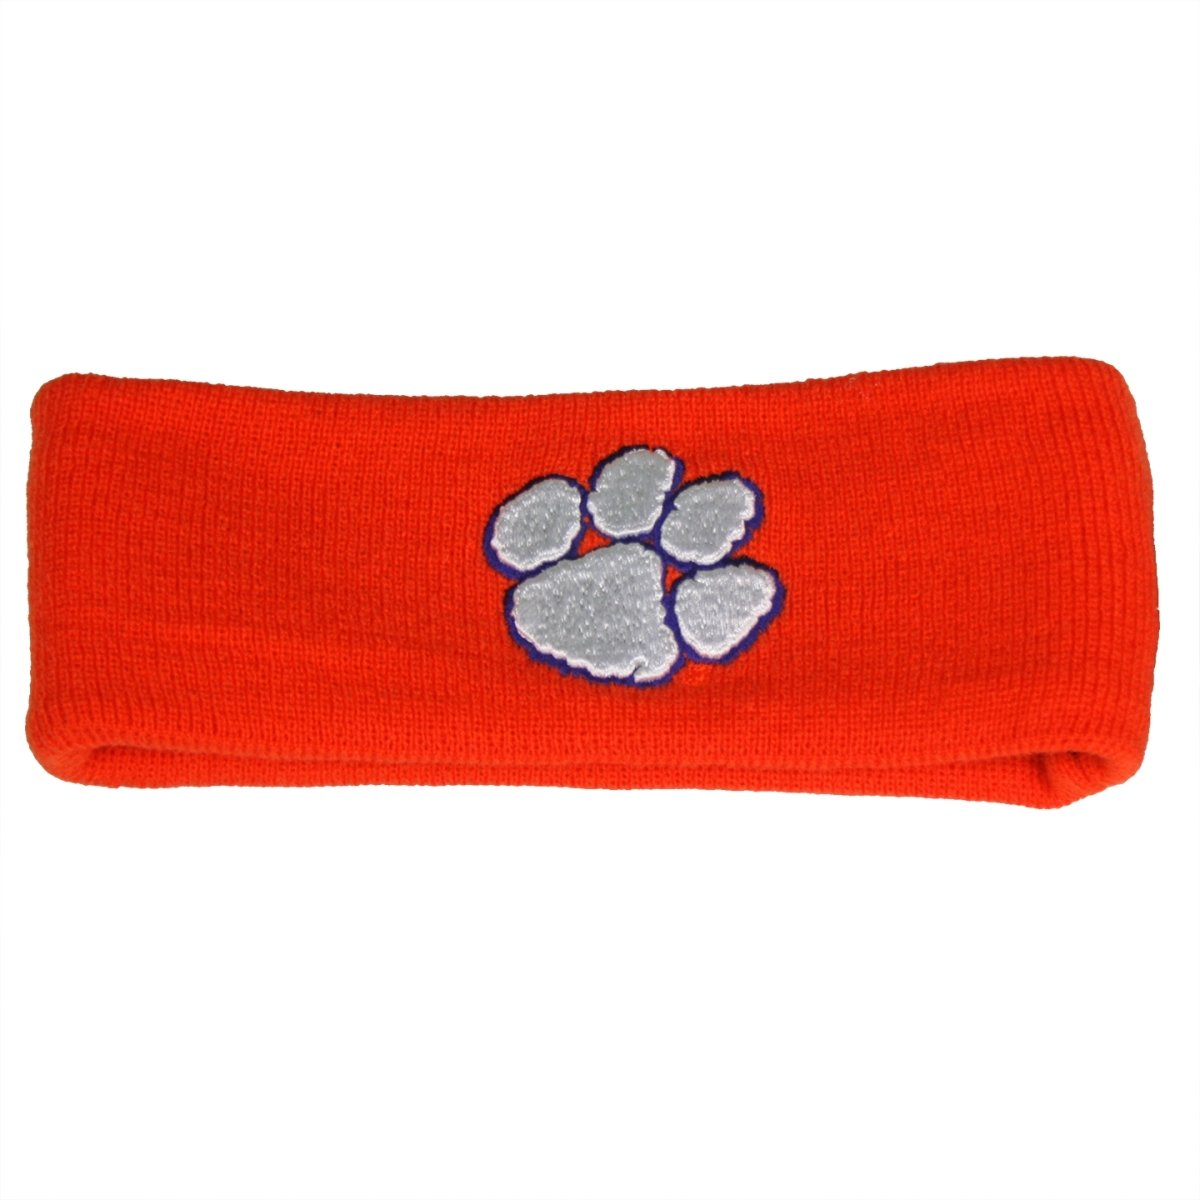 Top of the World Clemson Tigers Headband With White Paw - Mr. Knickerbocker